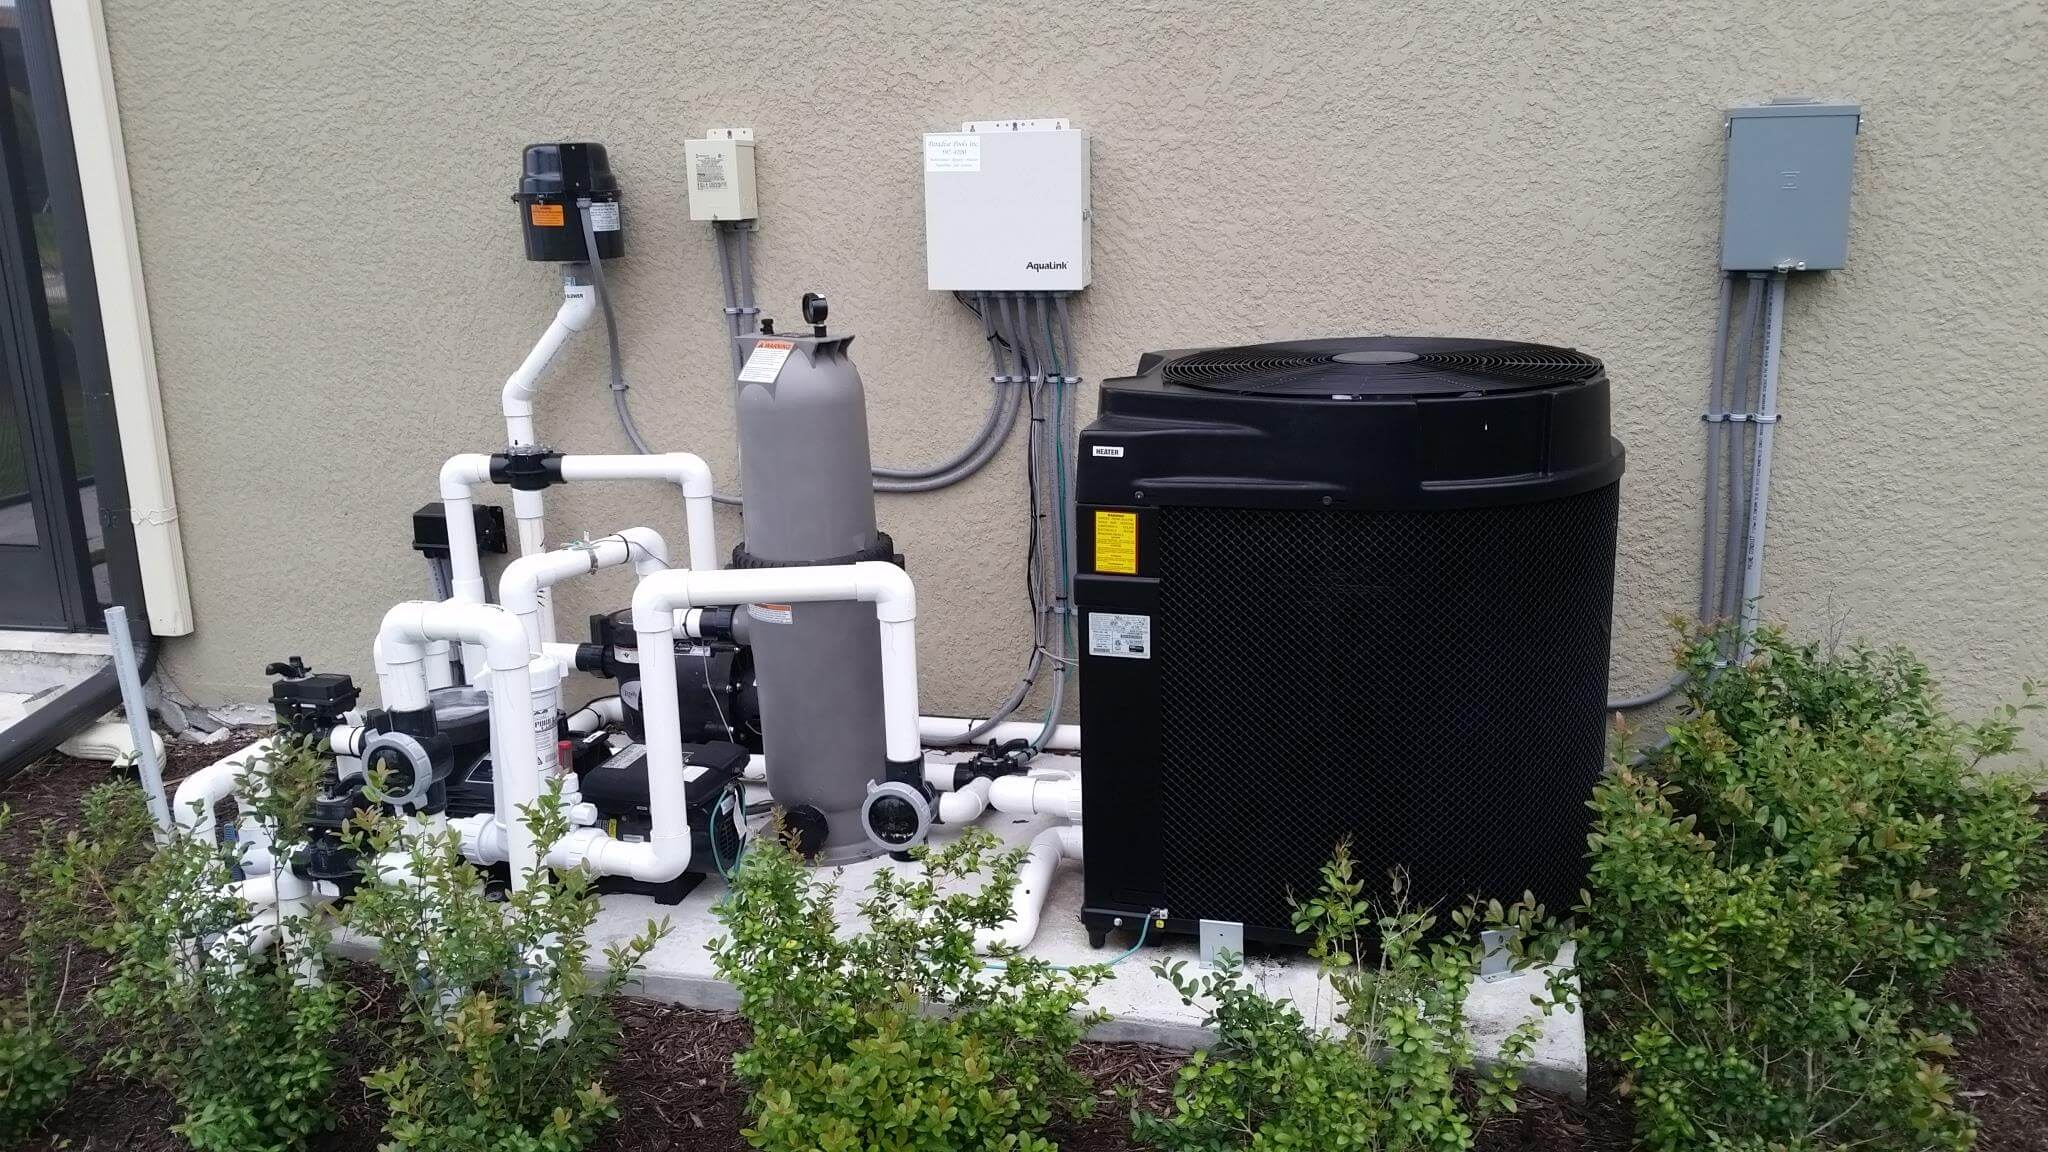 Pool Equipment Plumbing : Top energy using appliances in your home